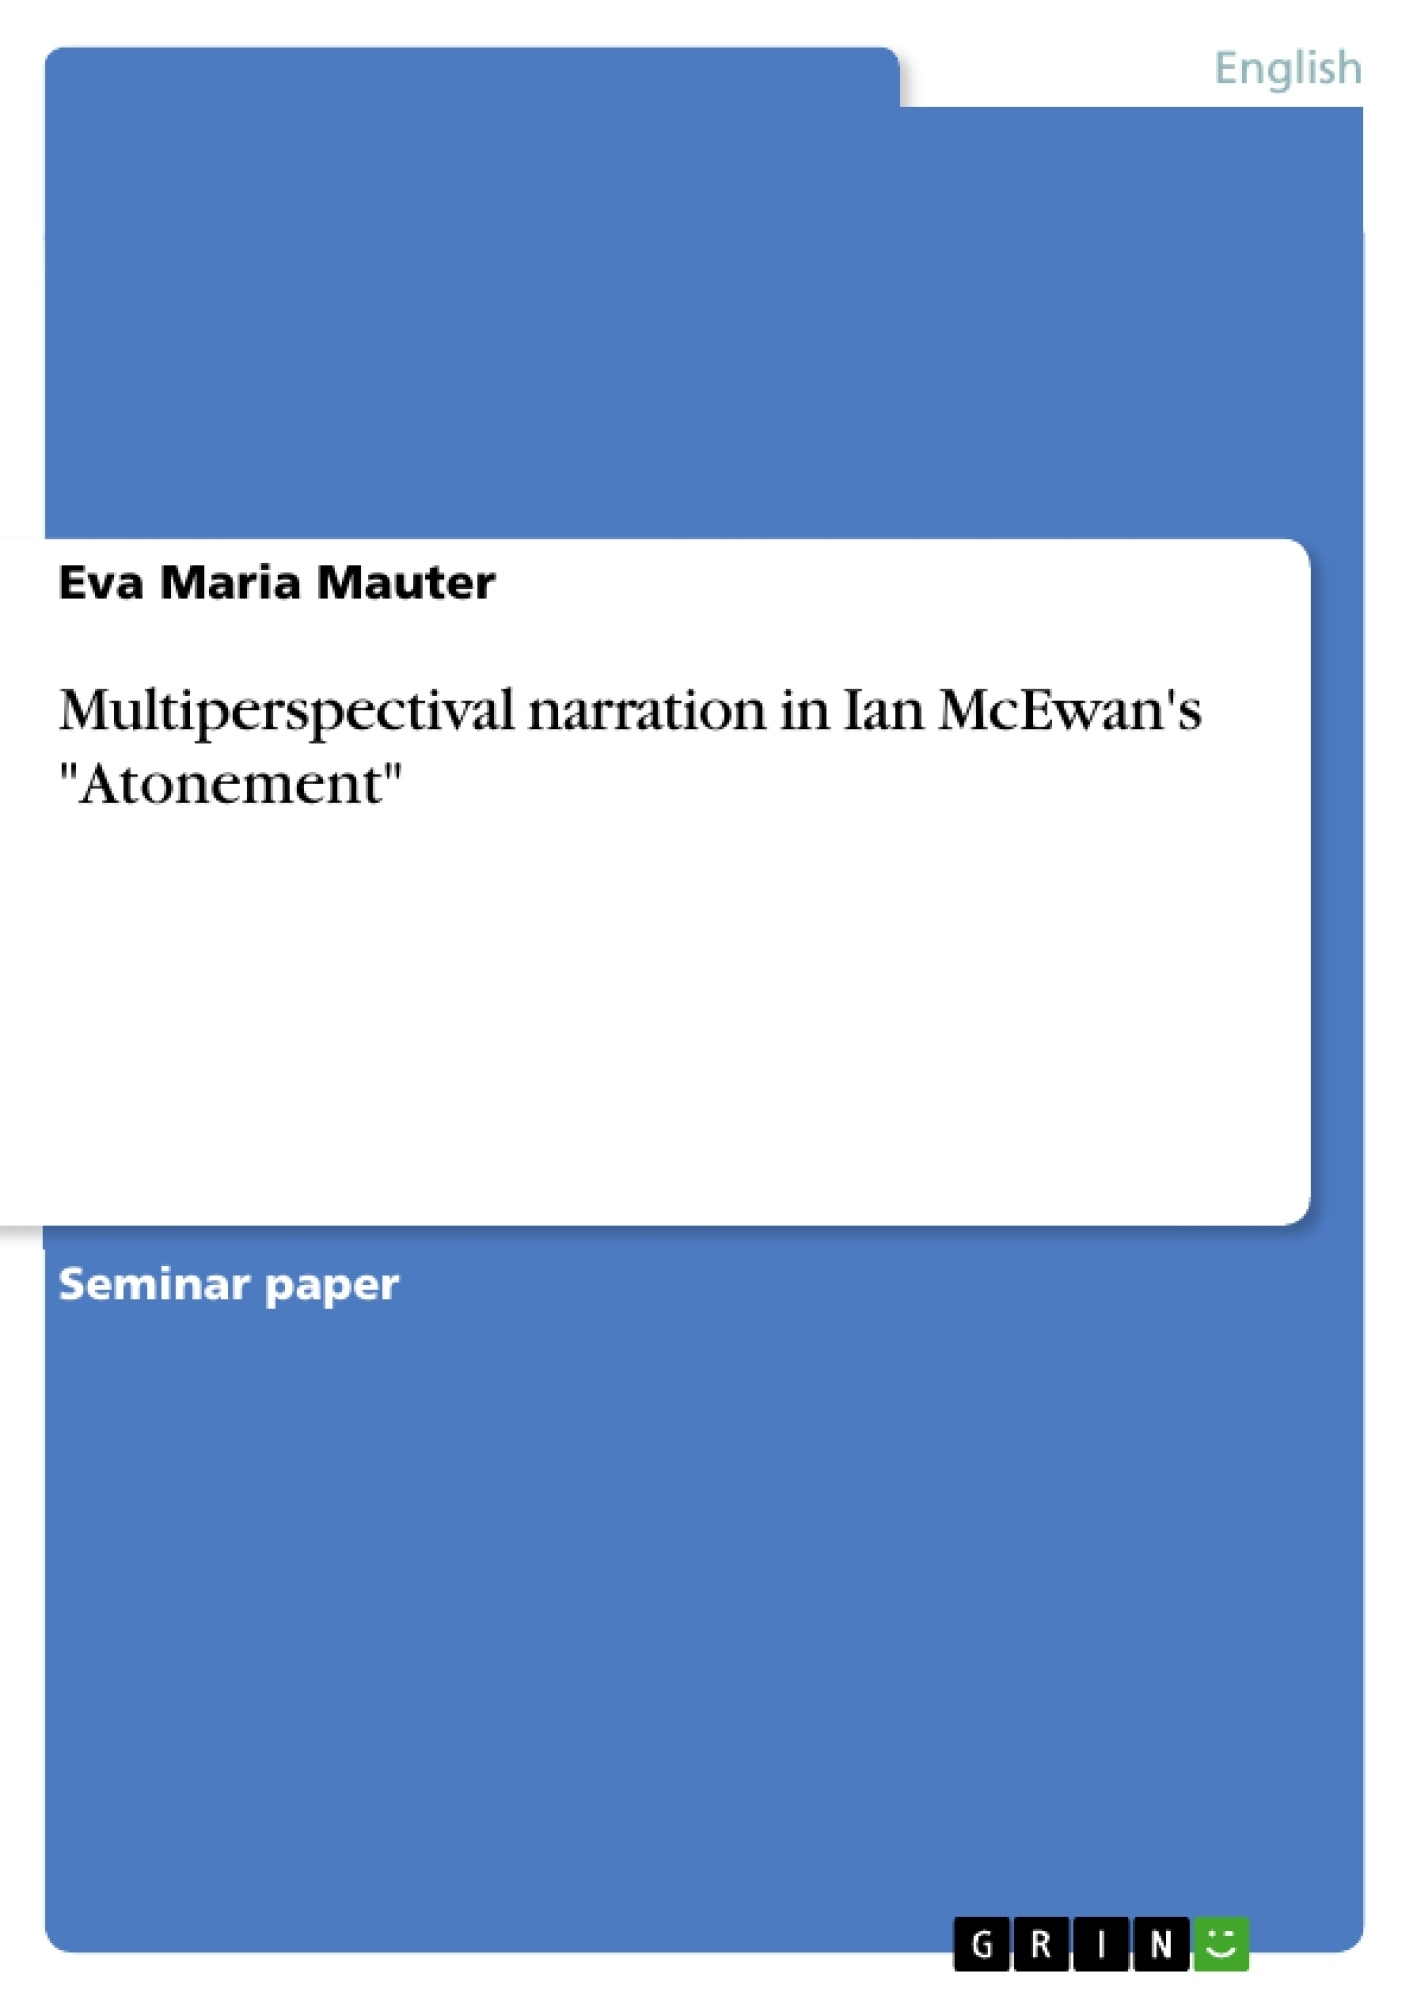 """Title: Multiperspectival narration in Ian McEwan's """"Atonement"""""""